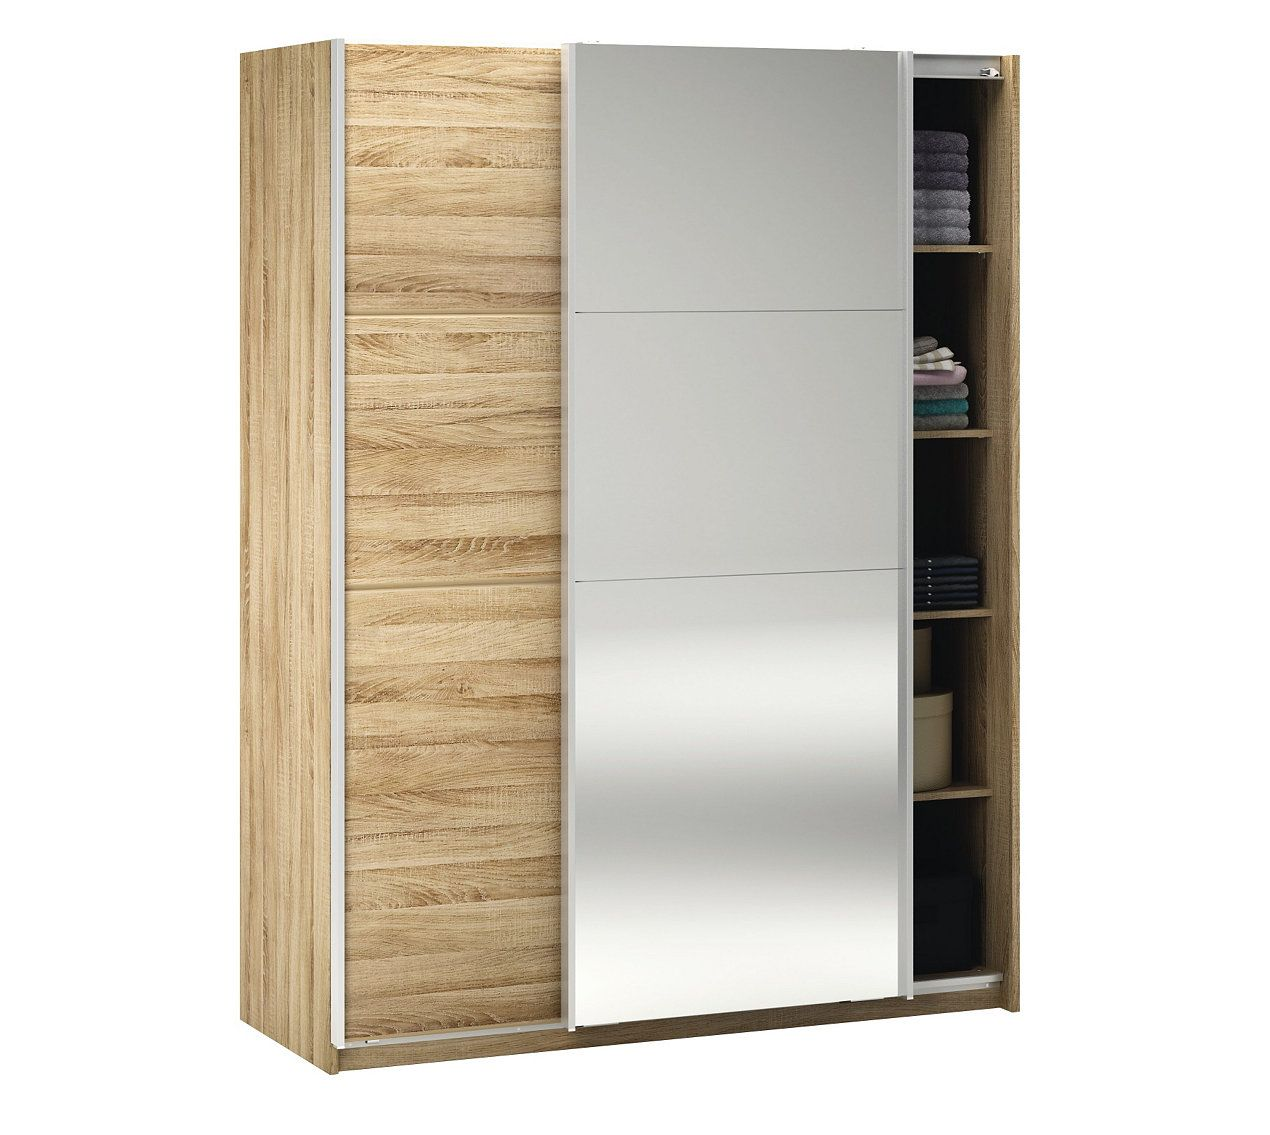 Armoires Armoire 2 Portes Coulissantes Glassy Chene Brosse Avec